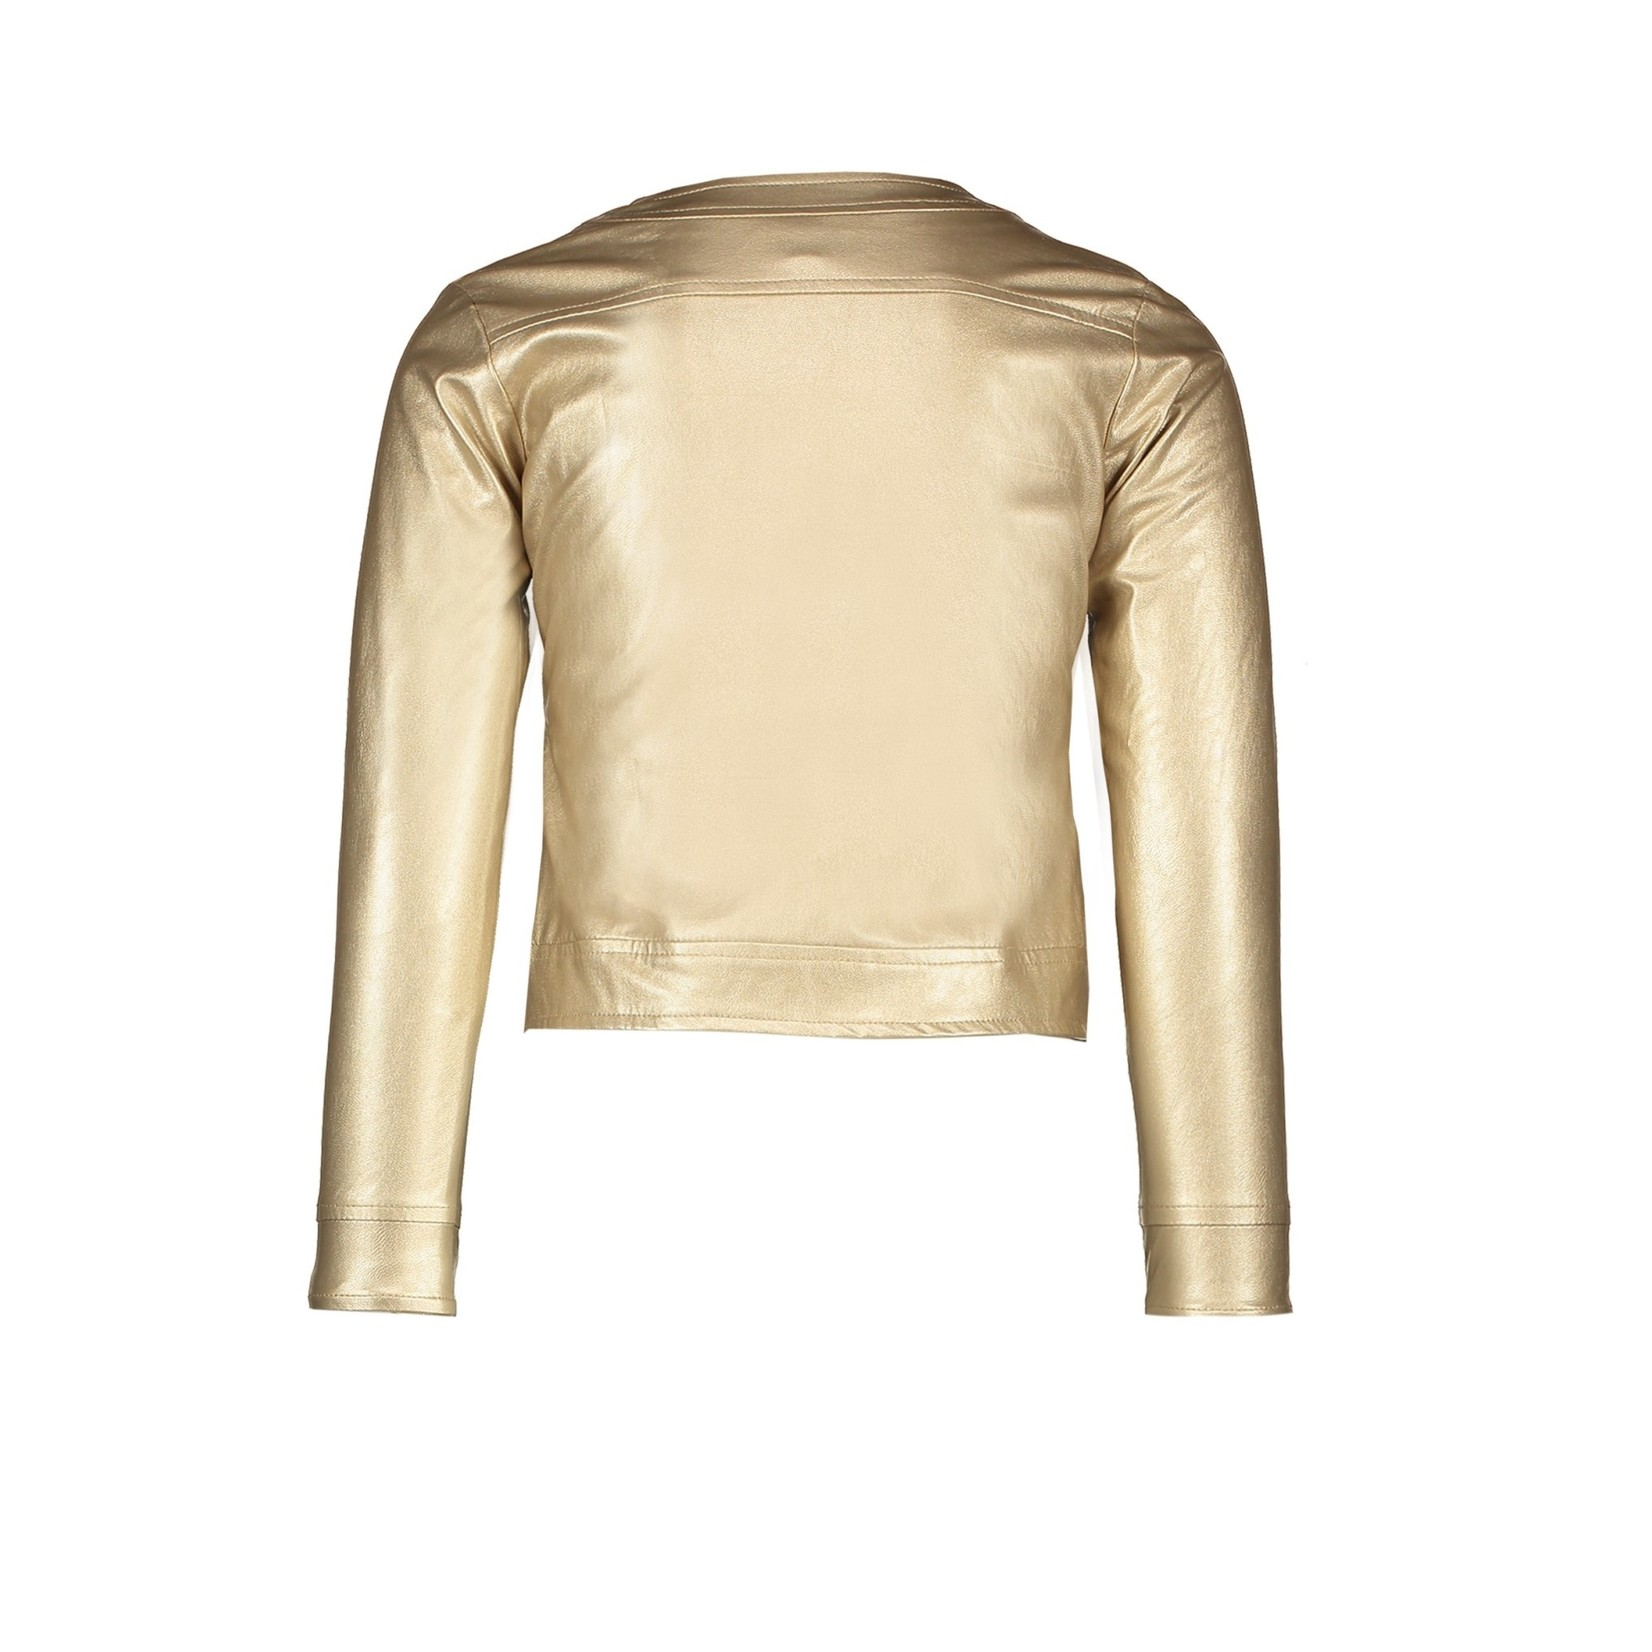 Le Chic Le Chic jacket precious gold metal